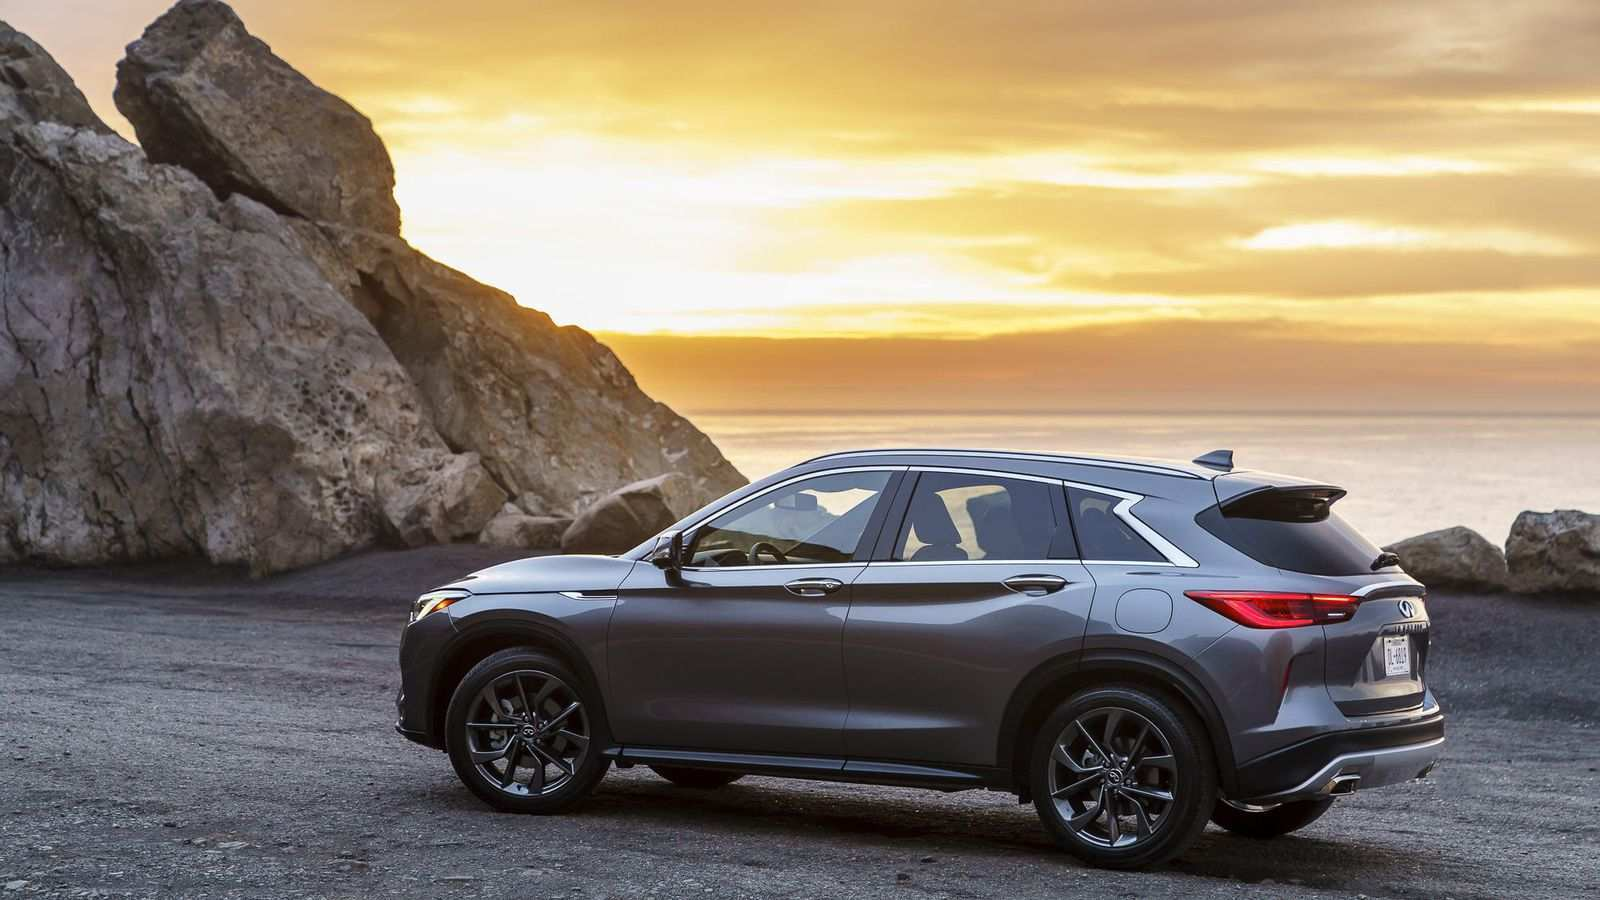 41 Best Review 2019 Infiniti Qx50 Engine Specs Configurations by 2019 Infiniti Qx50 Engine Specs